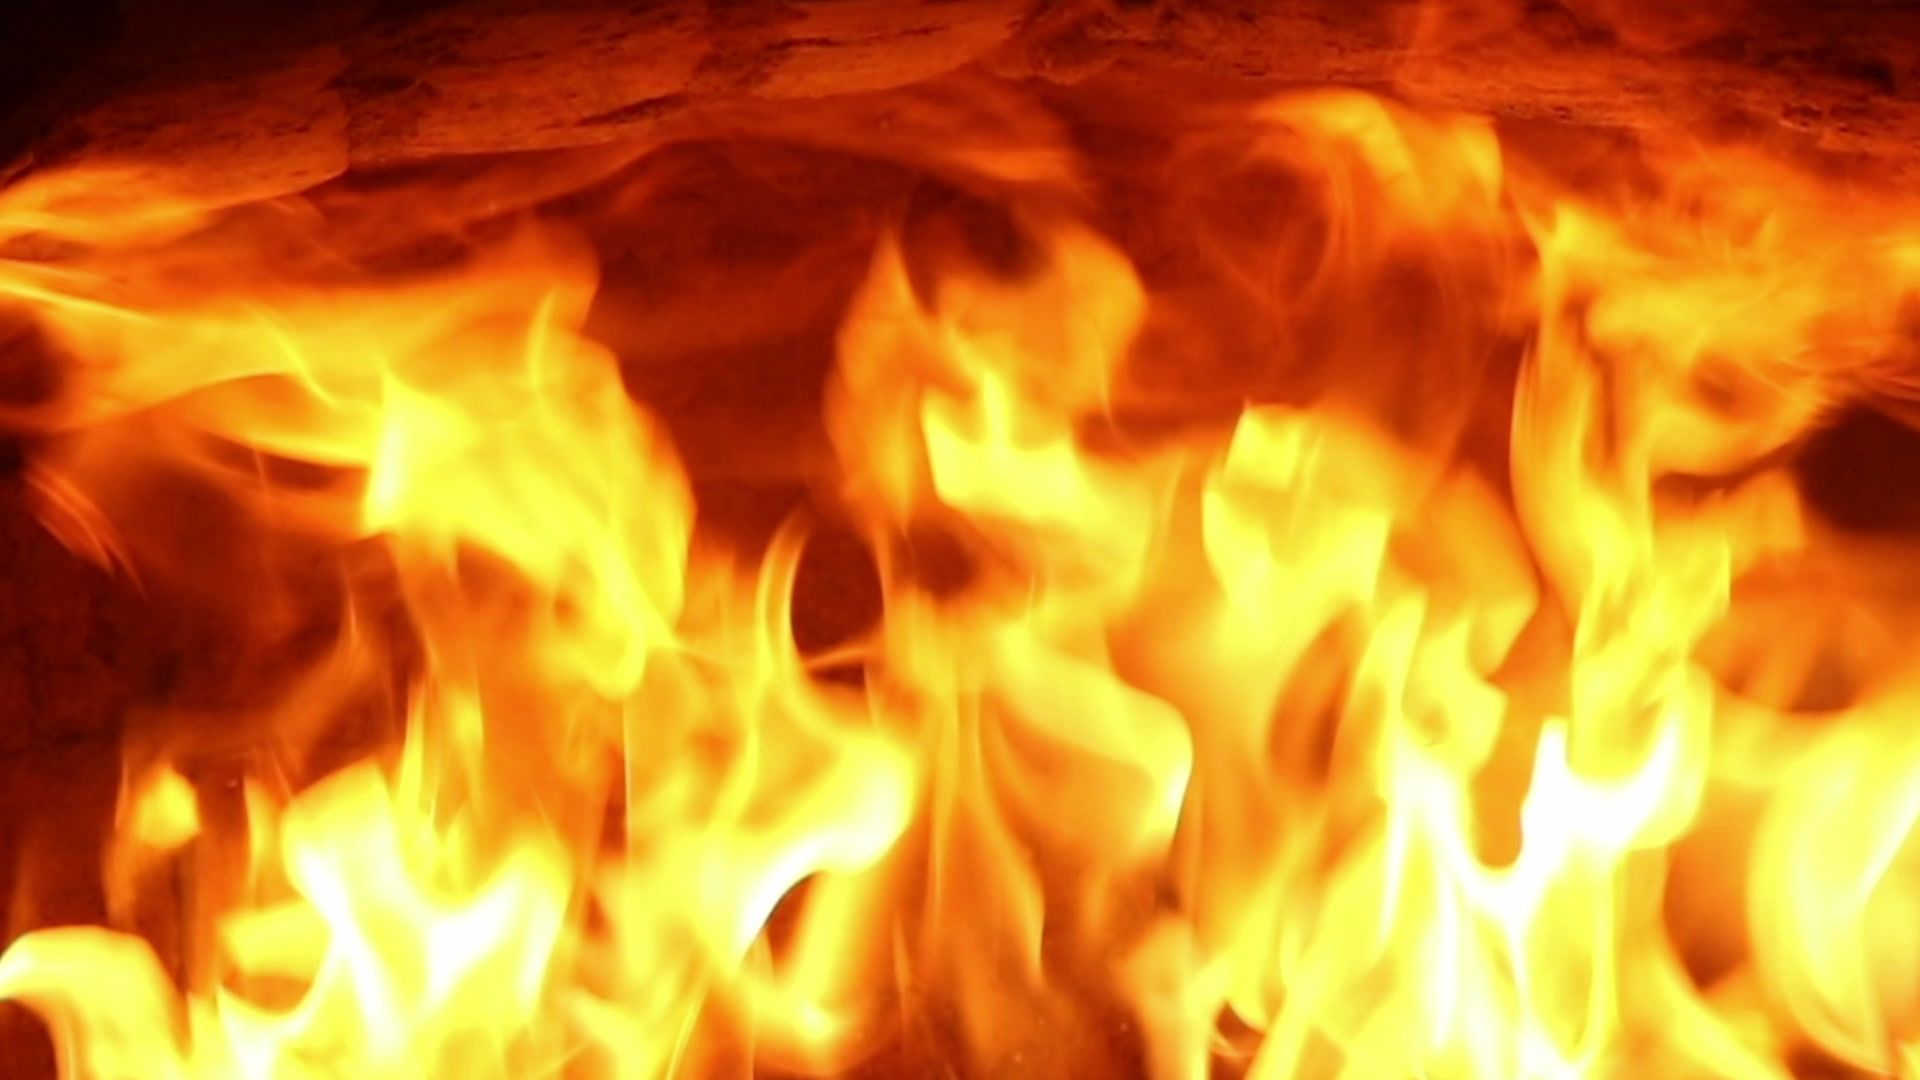 Fire Burning In The Furnace Close Up Stock Footage Furnace Burning Fire Footage Furnace Close Up Flames